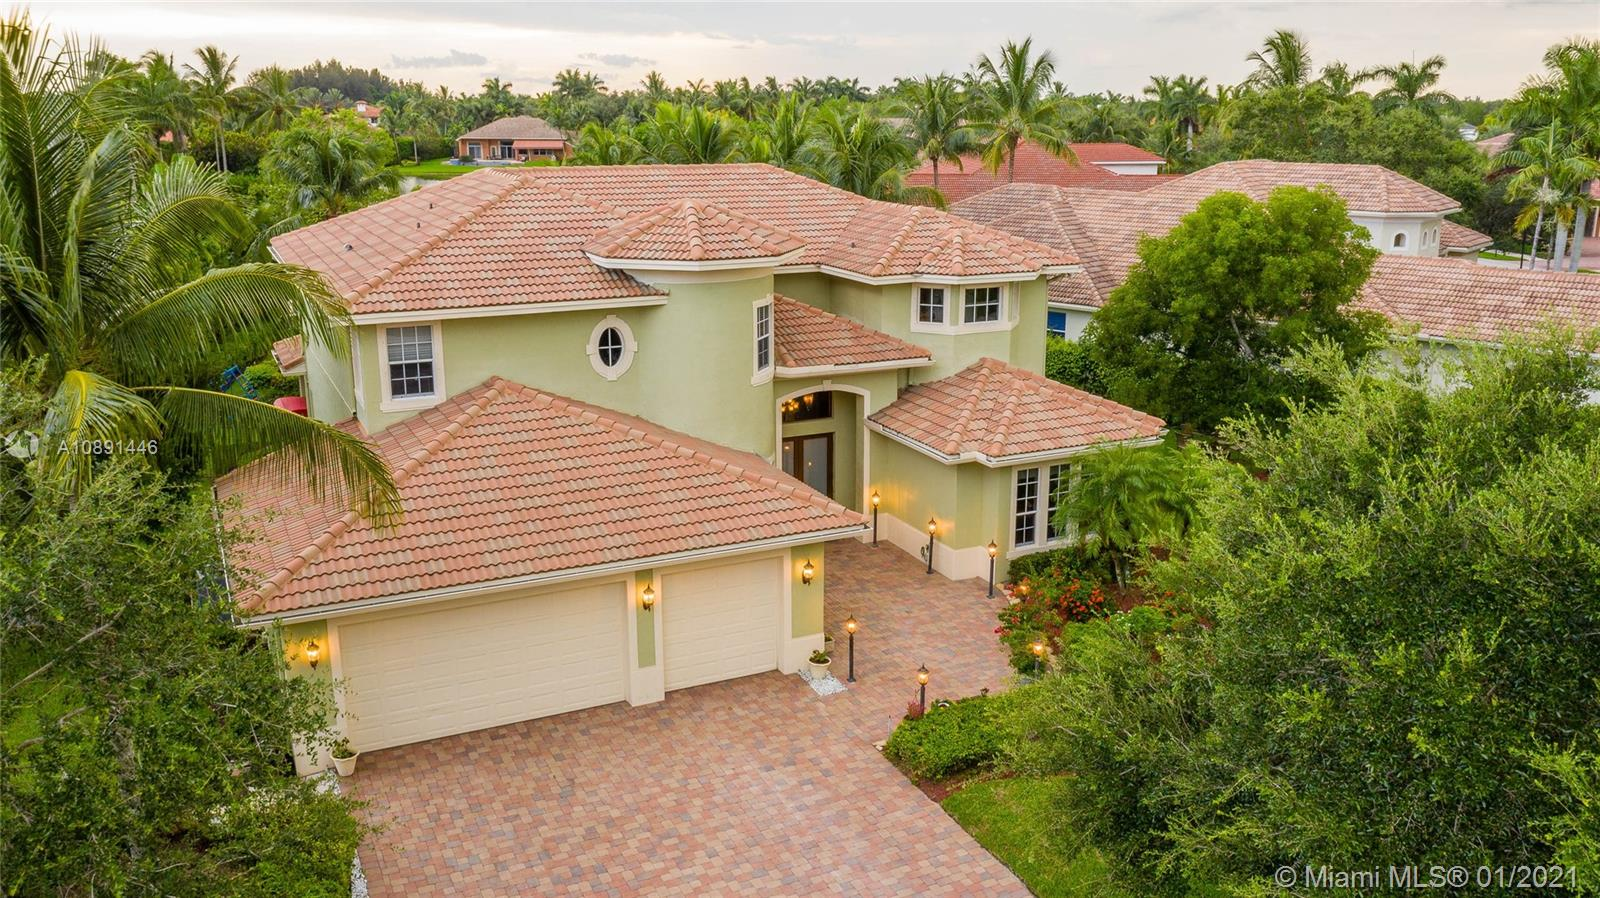 Kapok Grove Estates - 2801 E Stonebrook Cir, Davie, FL 33330